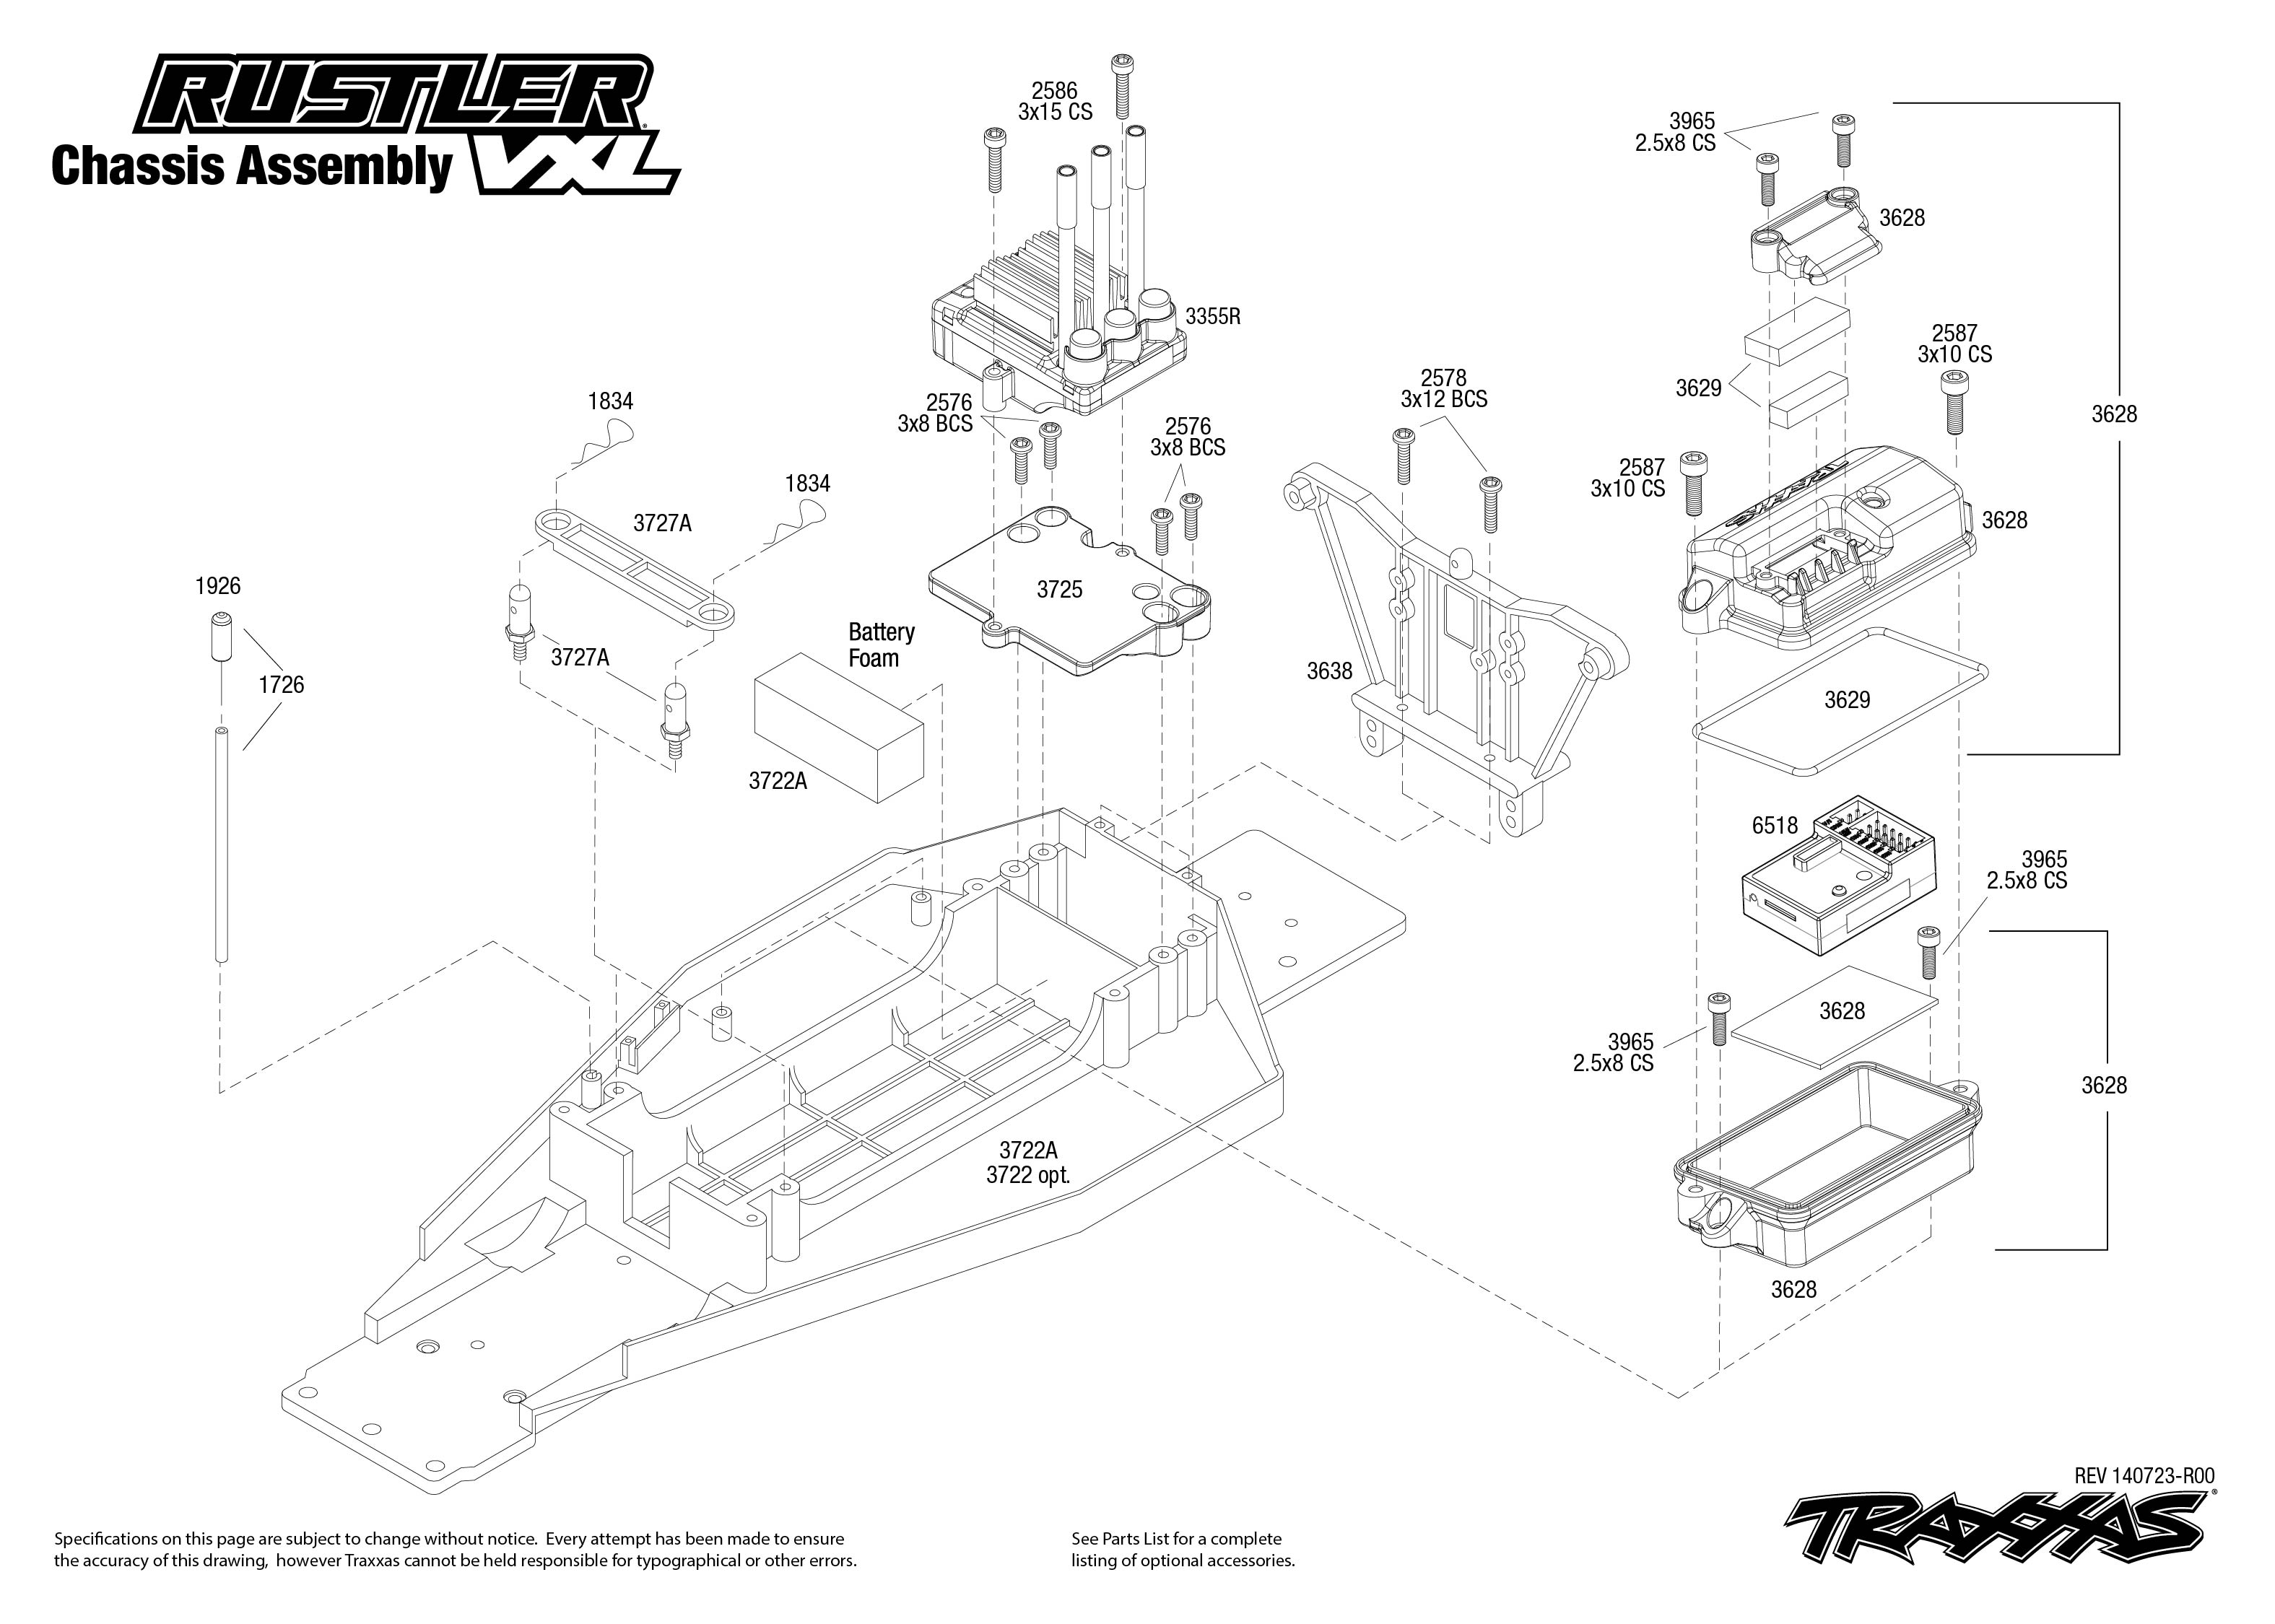 Rustler Vxl 1 Chassis Assembly Exploded View